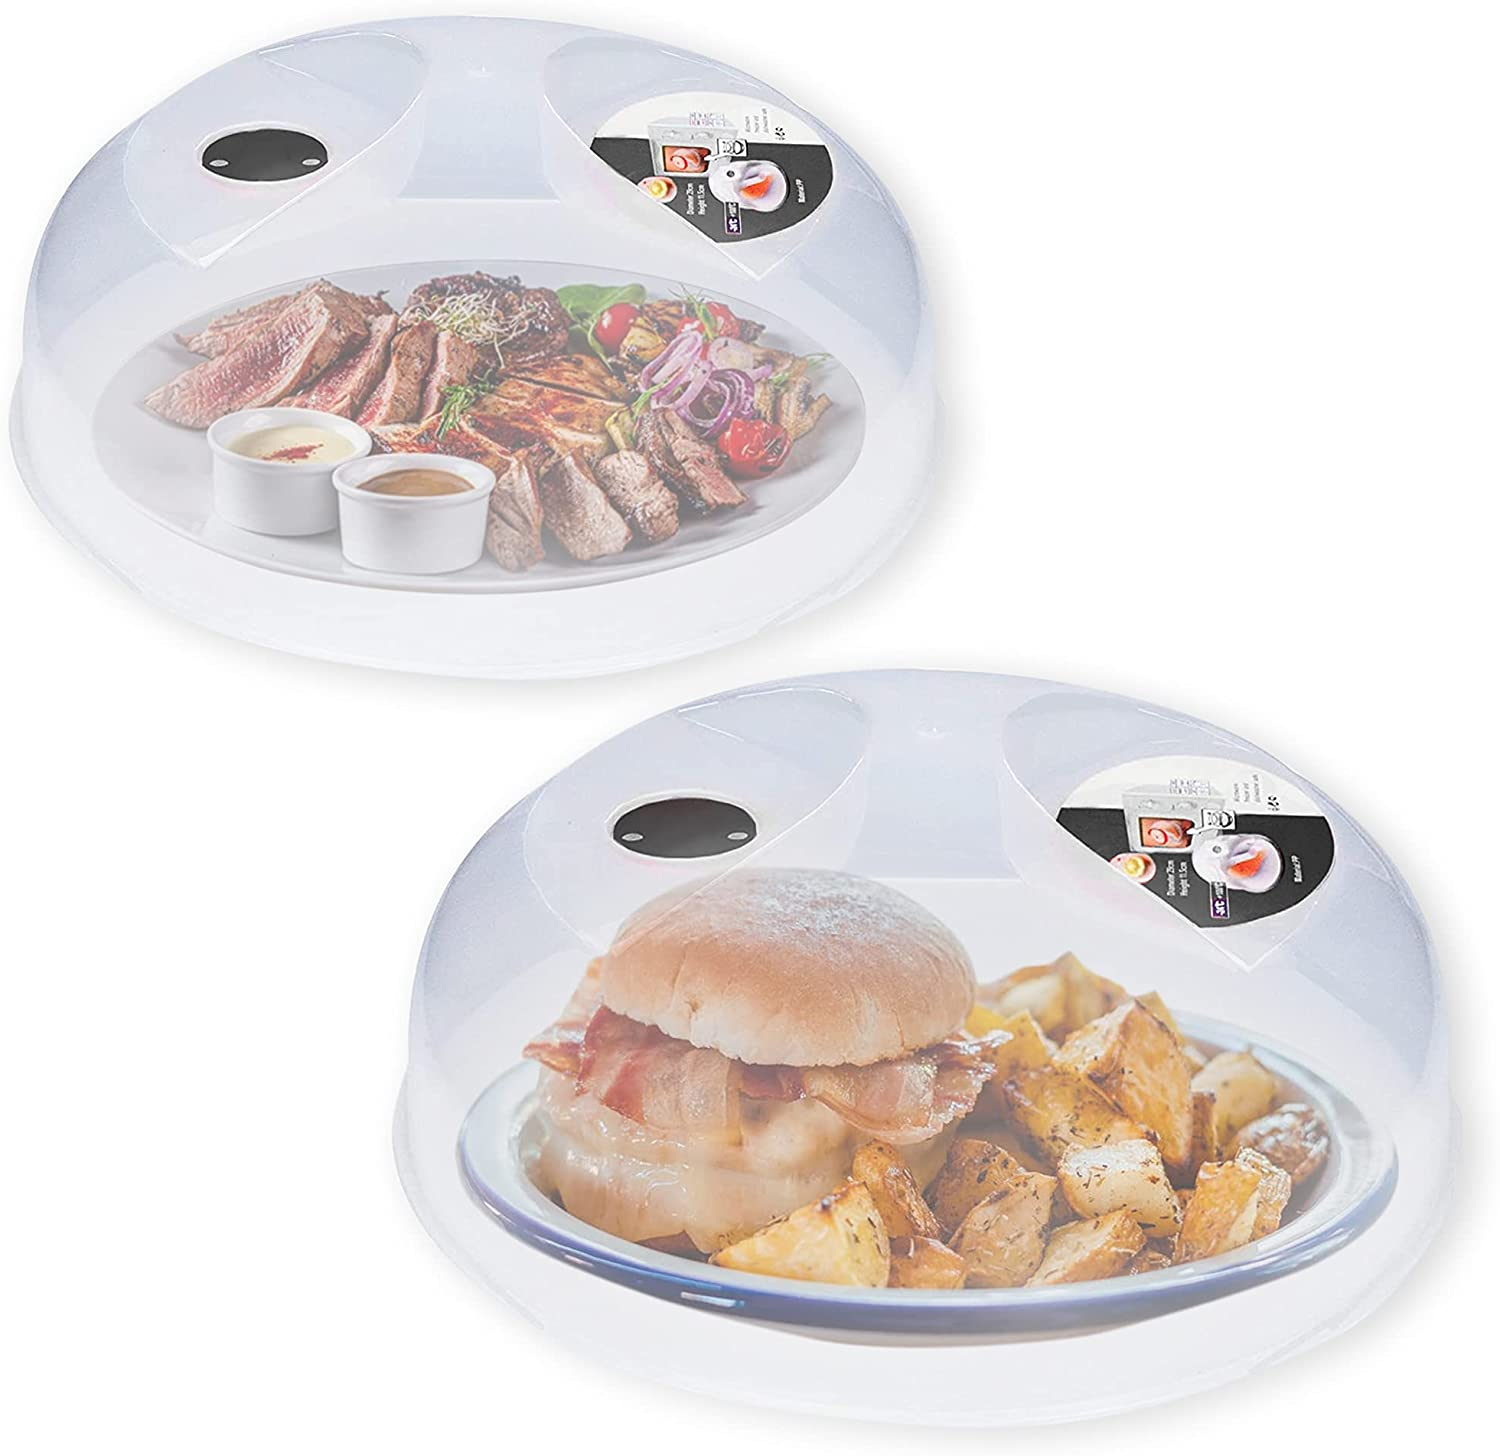 2 Pack Microwave Splatter Cover, Microwave Cover for Food, Plate Serving Covers, Microwave Plate Cover with Steam Vent, Guard Lid, Easy Grip, Dishwasher Safe & 11.5 Inch (Grey, Clear Cover)